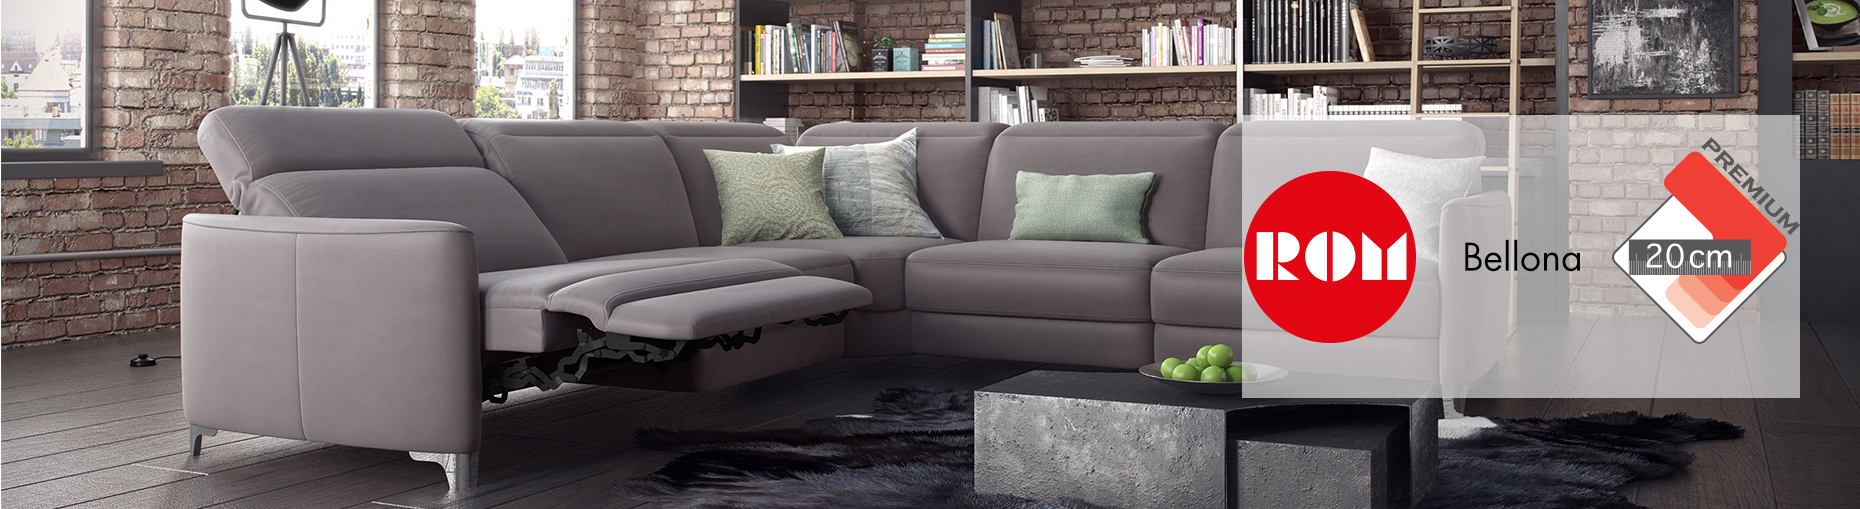 Bellona Sullivan Sofa collection at Forrest Furnishing